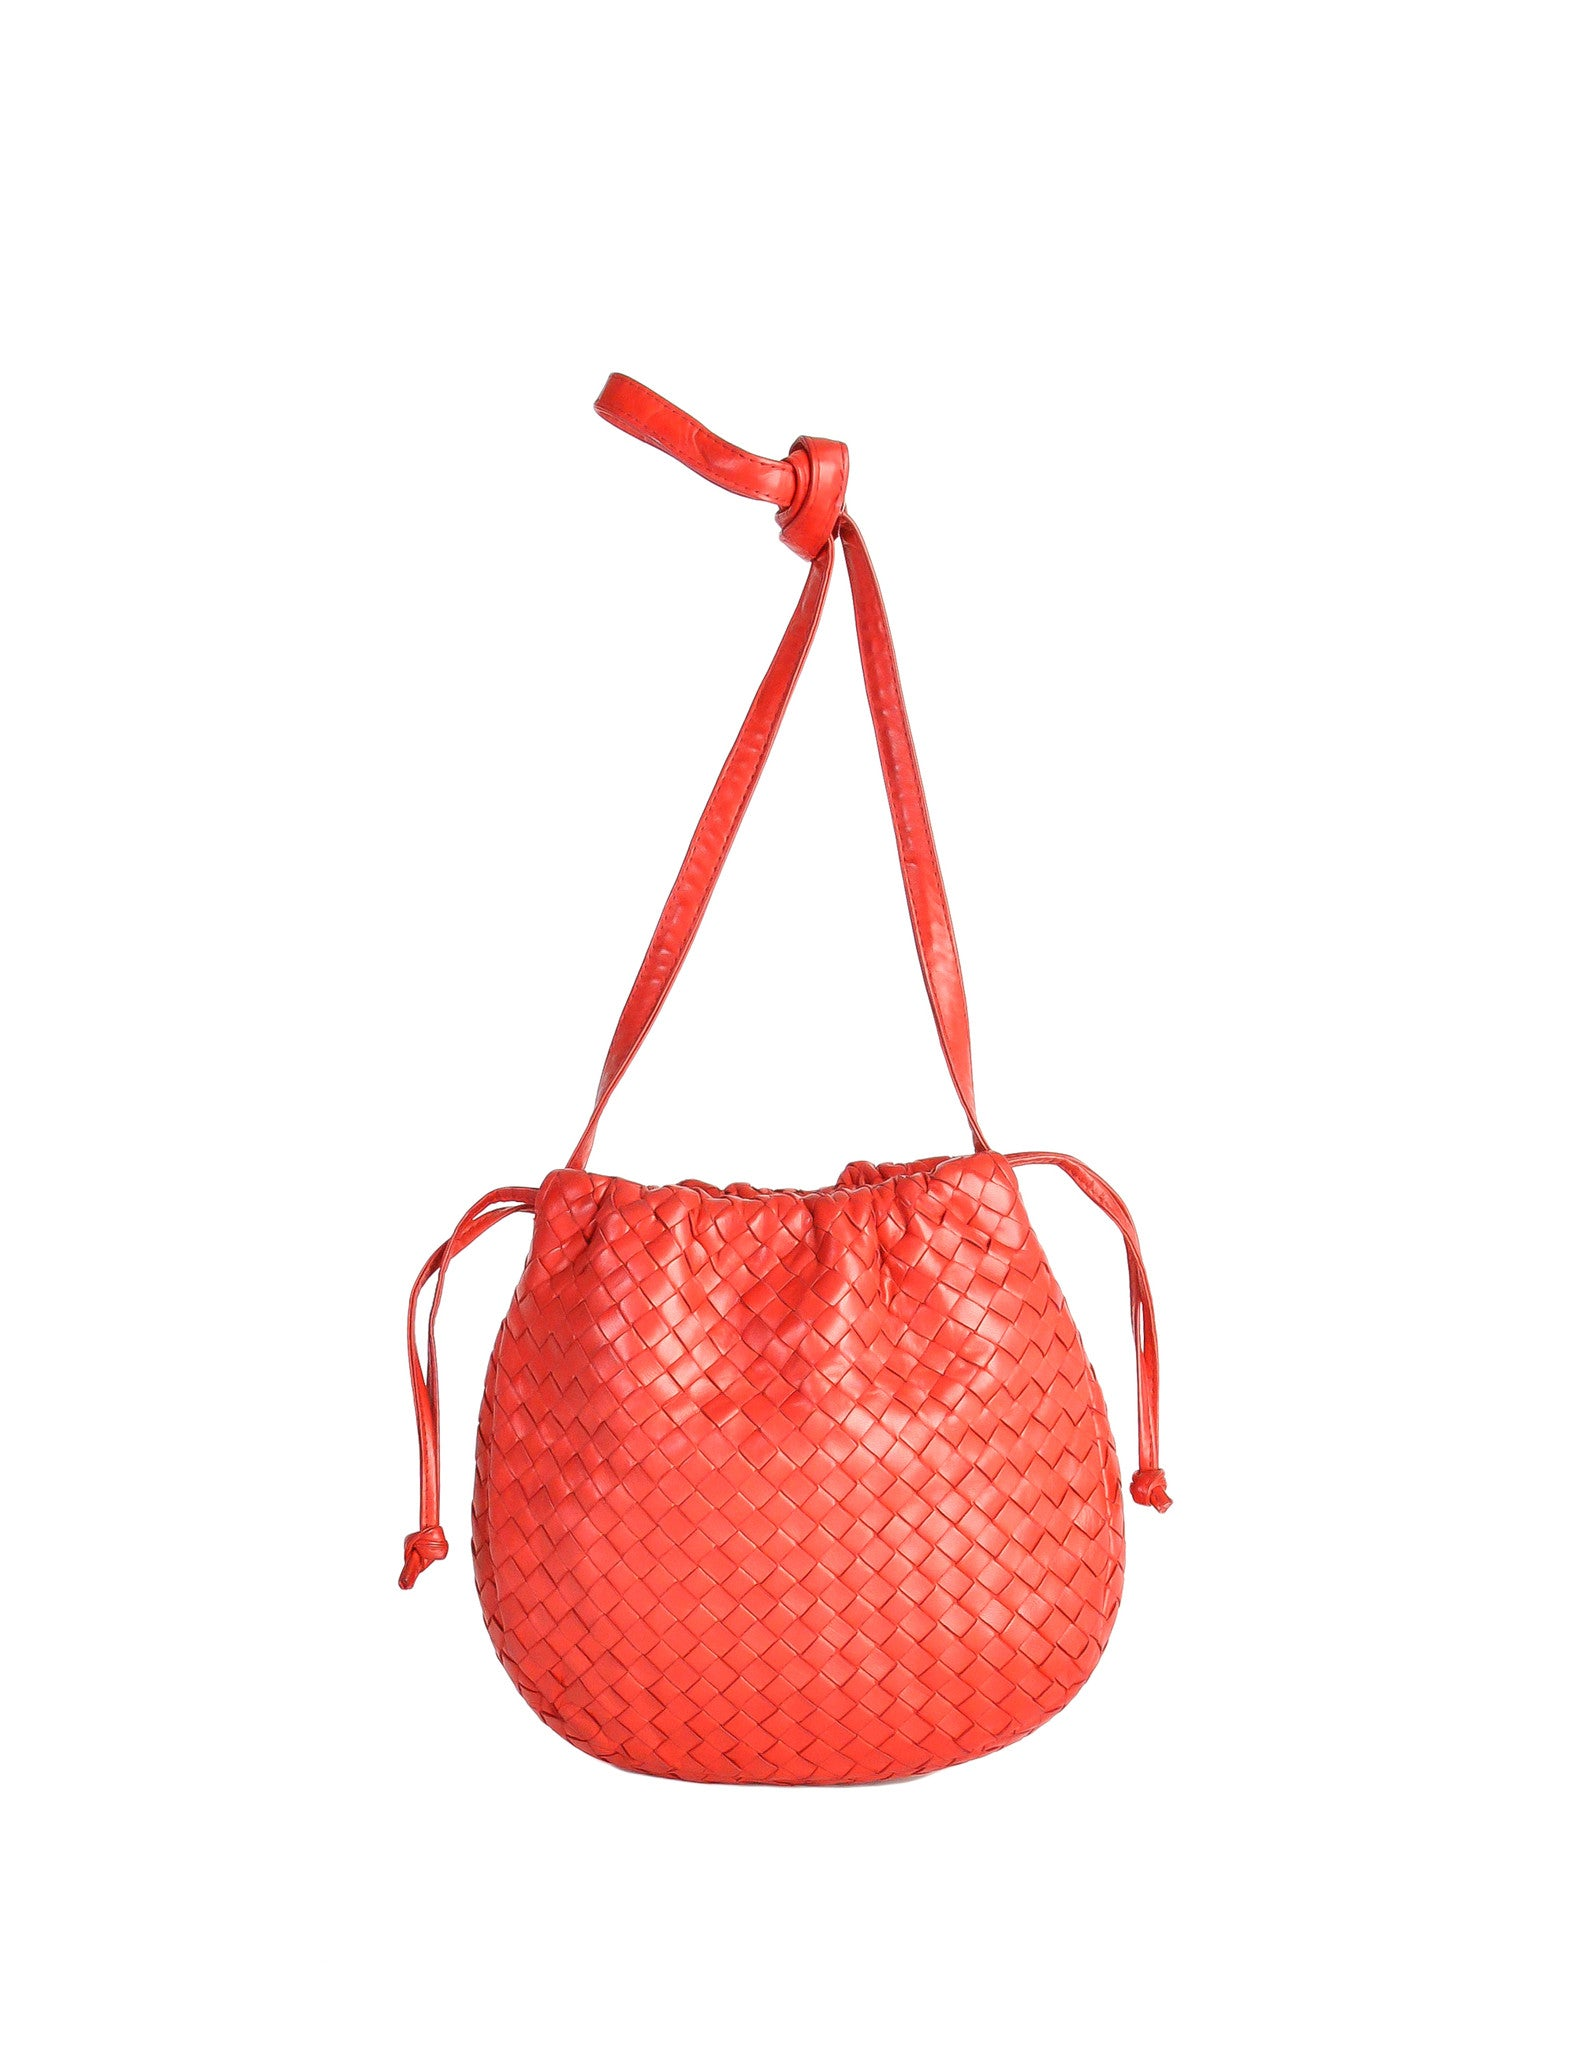 09668a619e Bottega Veneta Vintage Intrecciato Red Woven Leather Drawstring Bag -  Amarcord Vintage Fashion - 1